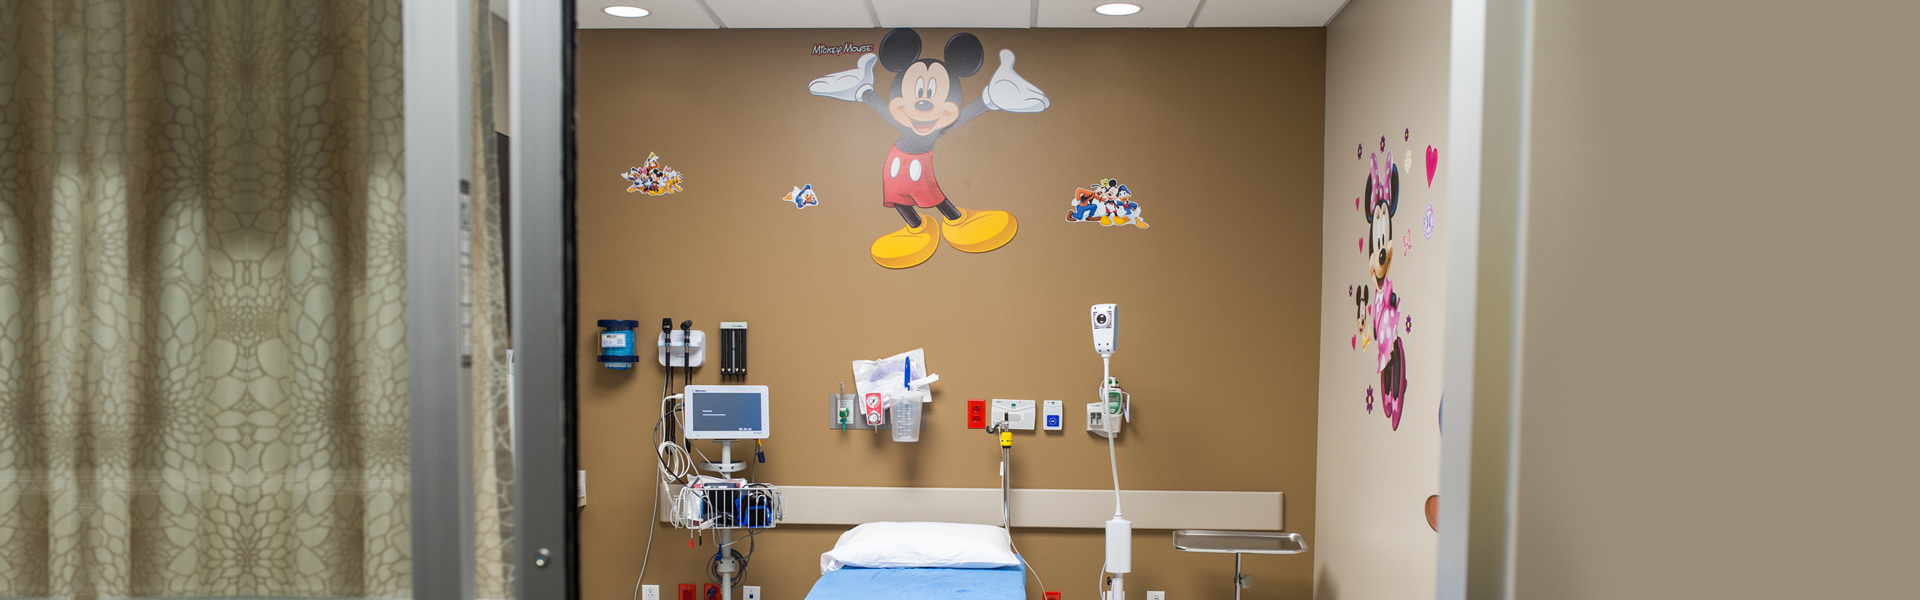 pediatric emergency care closer view